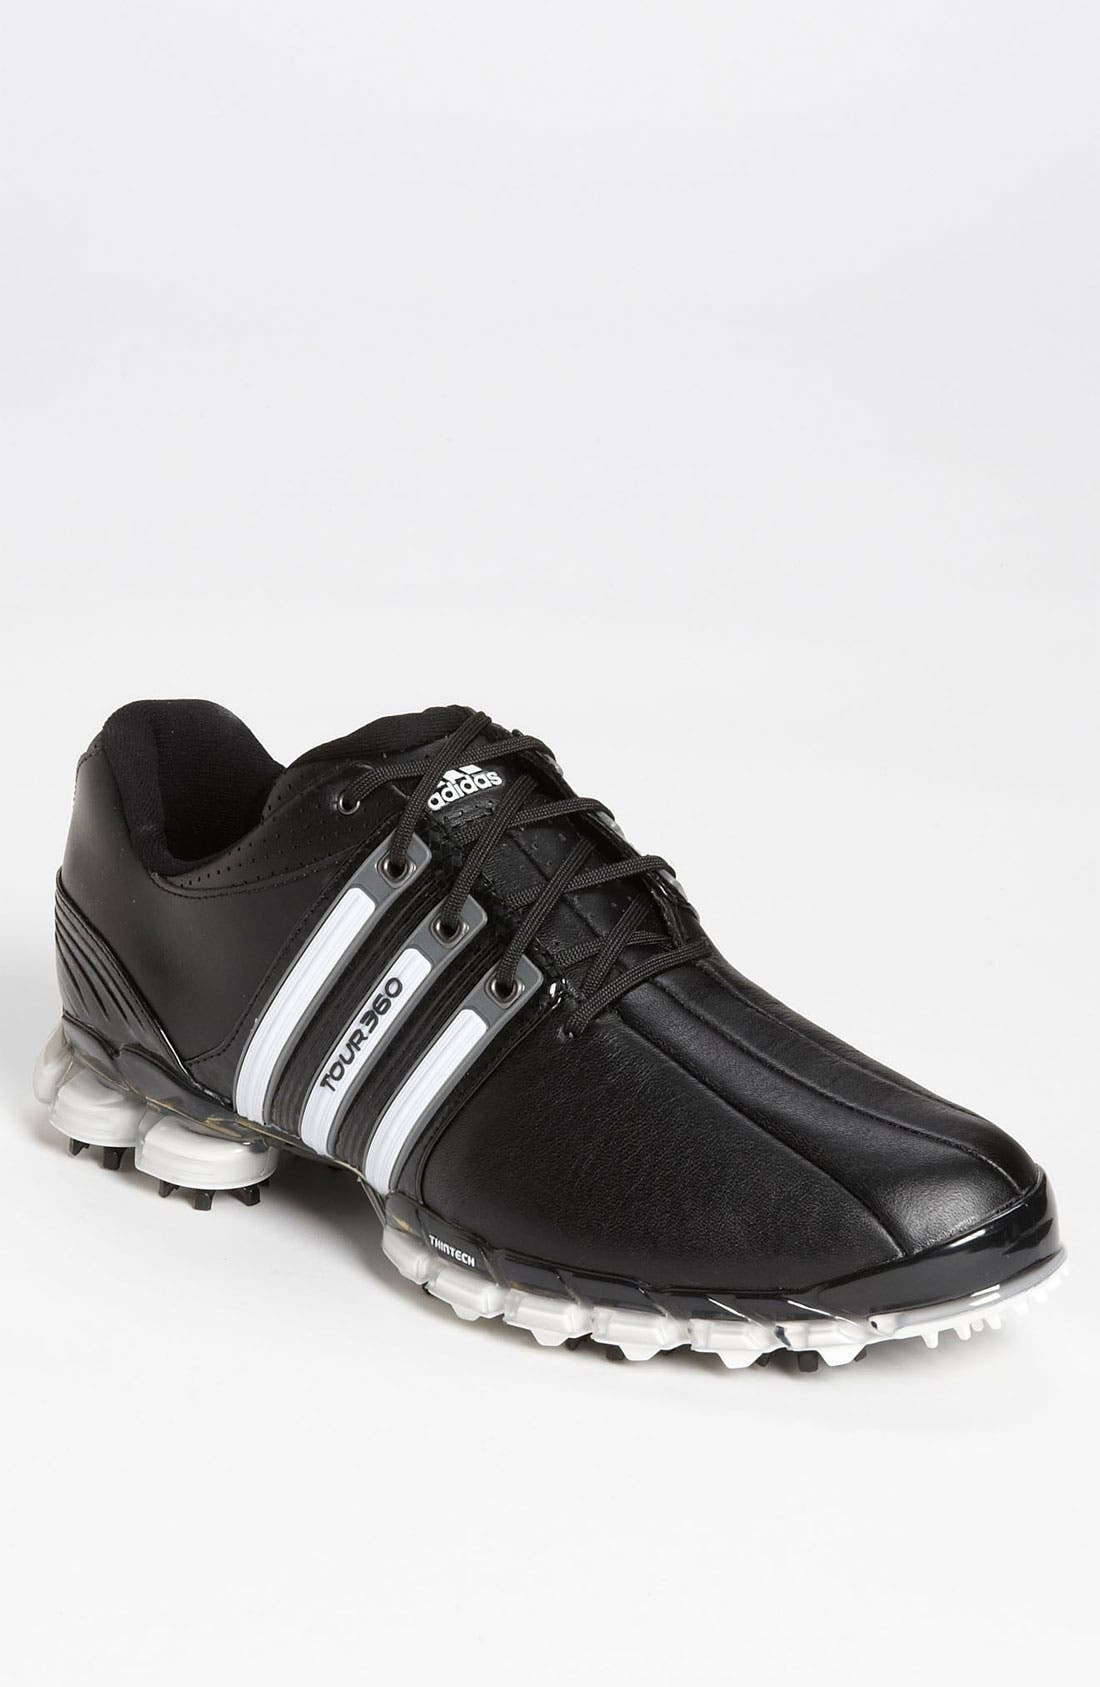 Alternate Image 1 Selected - adidas TaylorMade 'Tour360 ATV' Golf Shoe (Men) (Online Only)